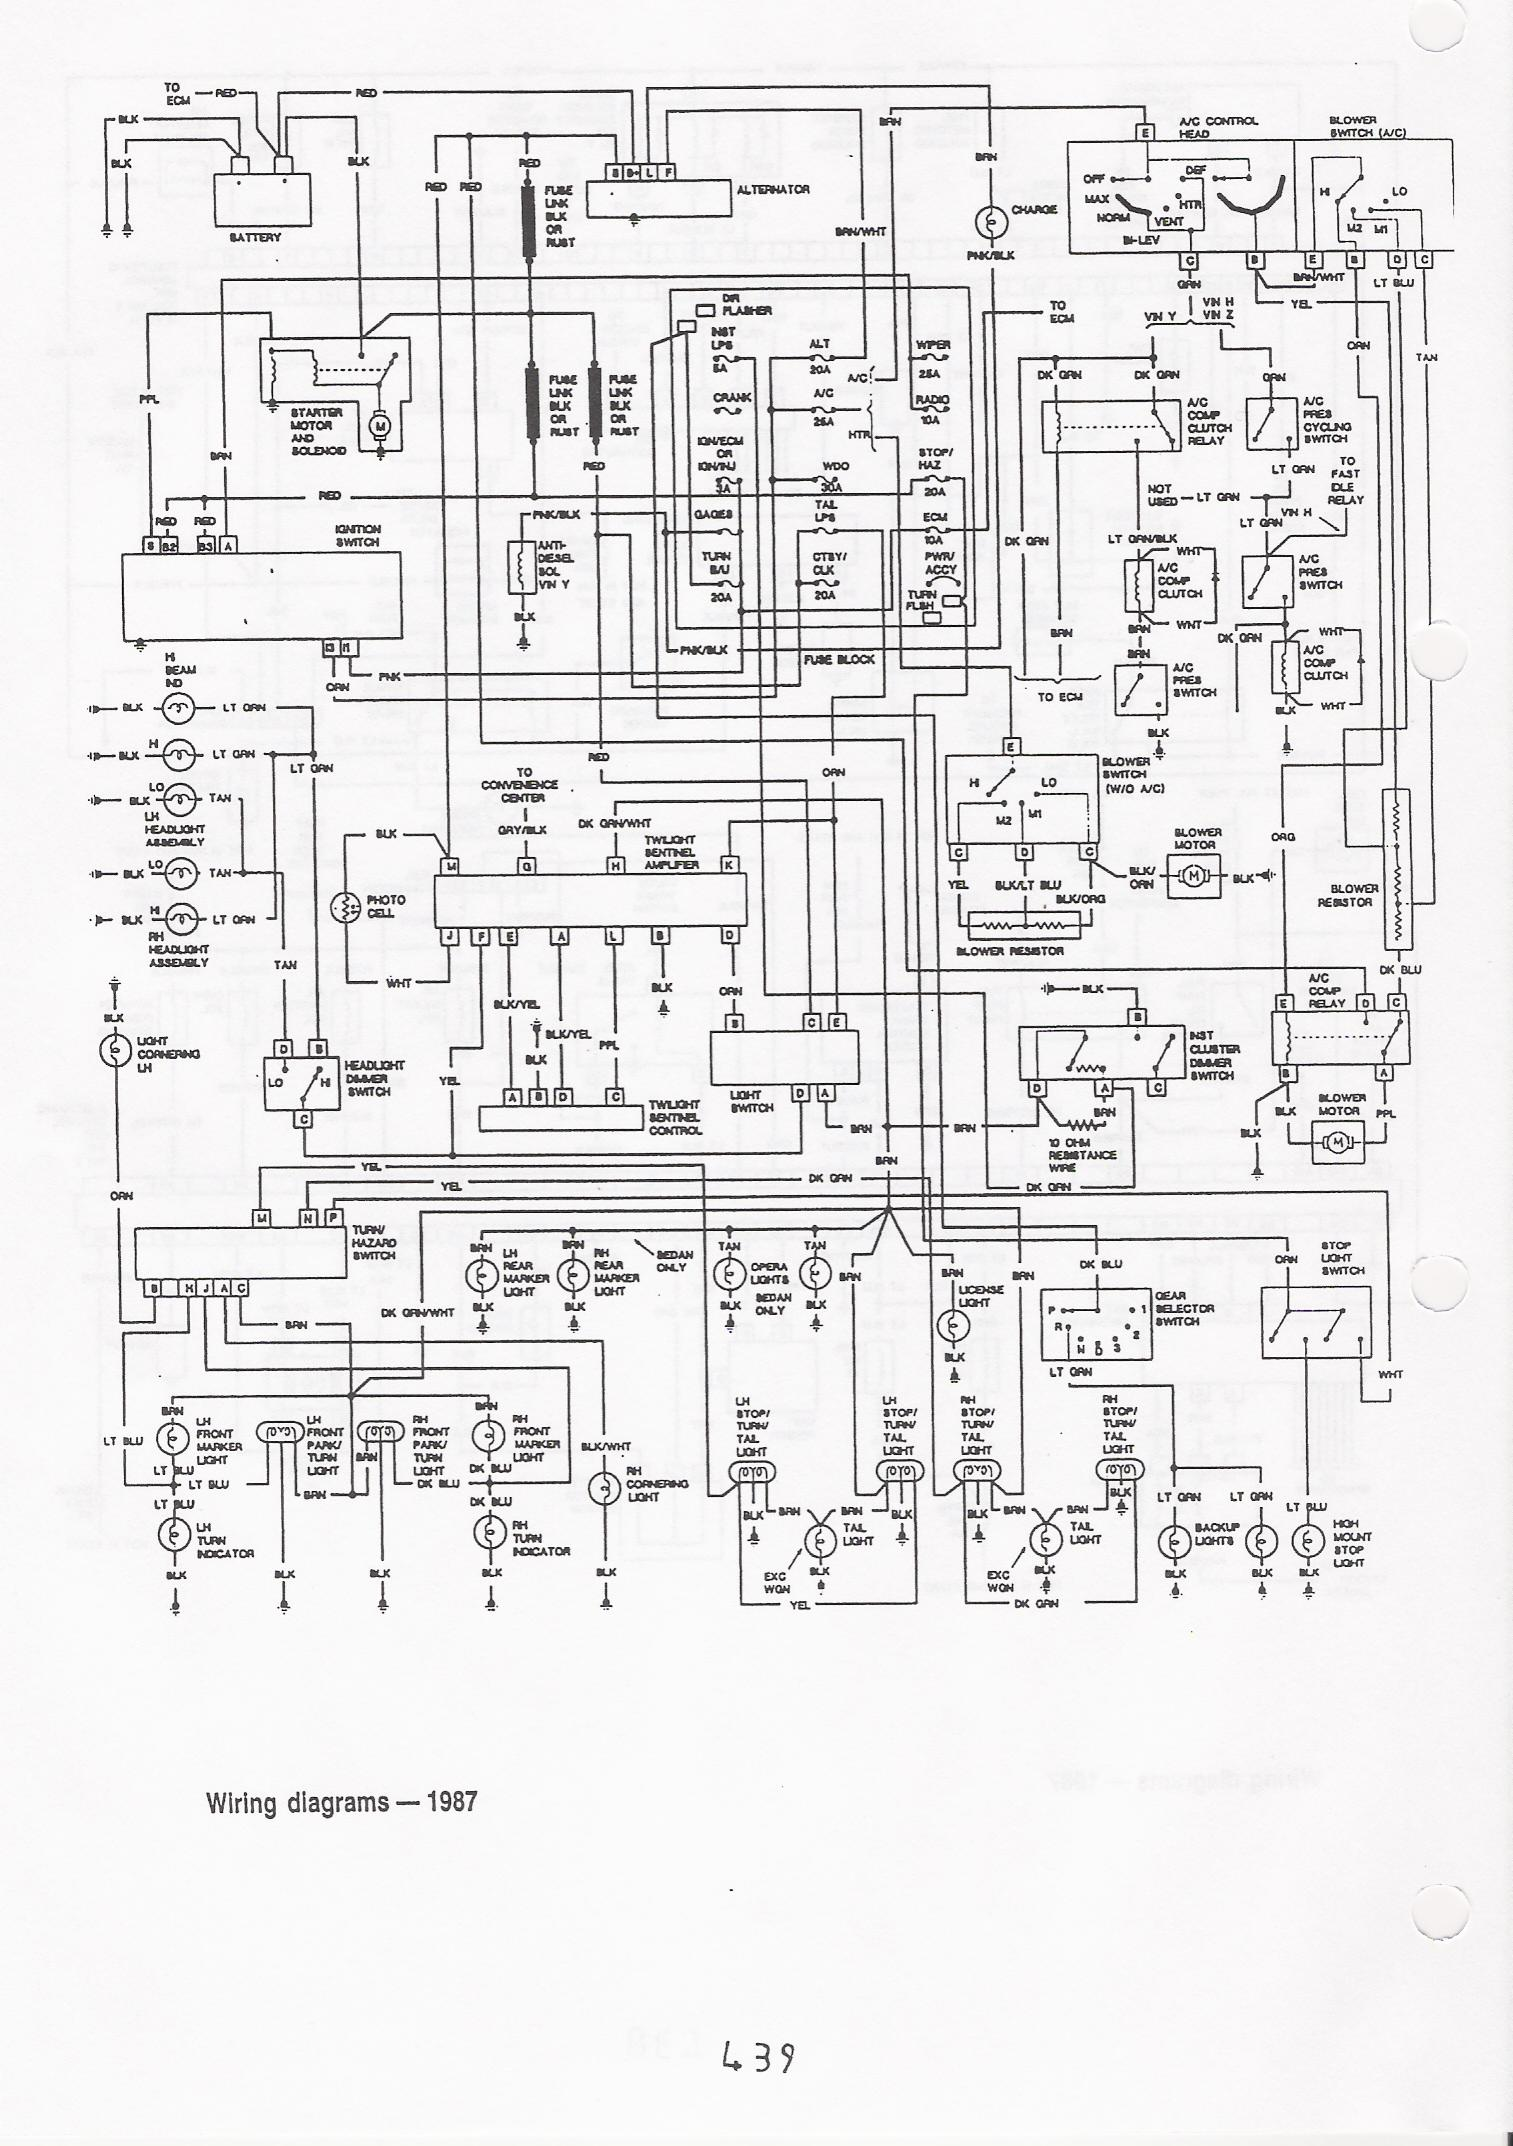 Caprice Wiring Diagram Another Blog About 1966 Chevy Diagrams 1987 02 Chevrolet Rh Motor Talk De 1989